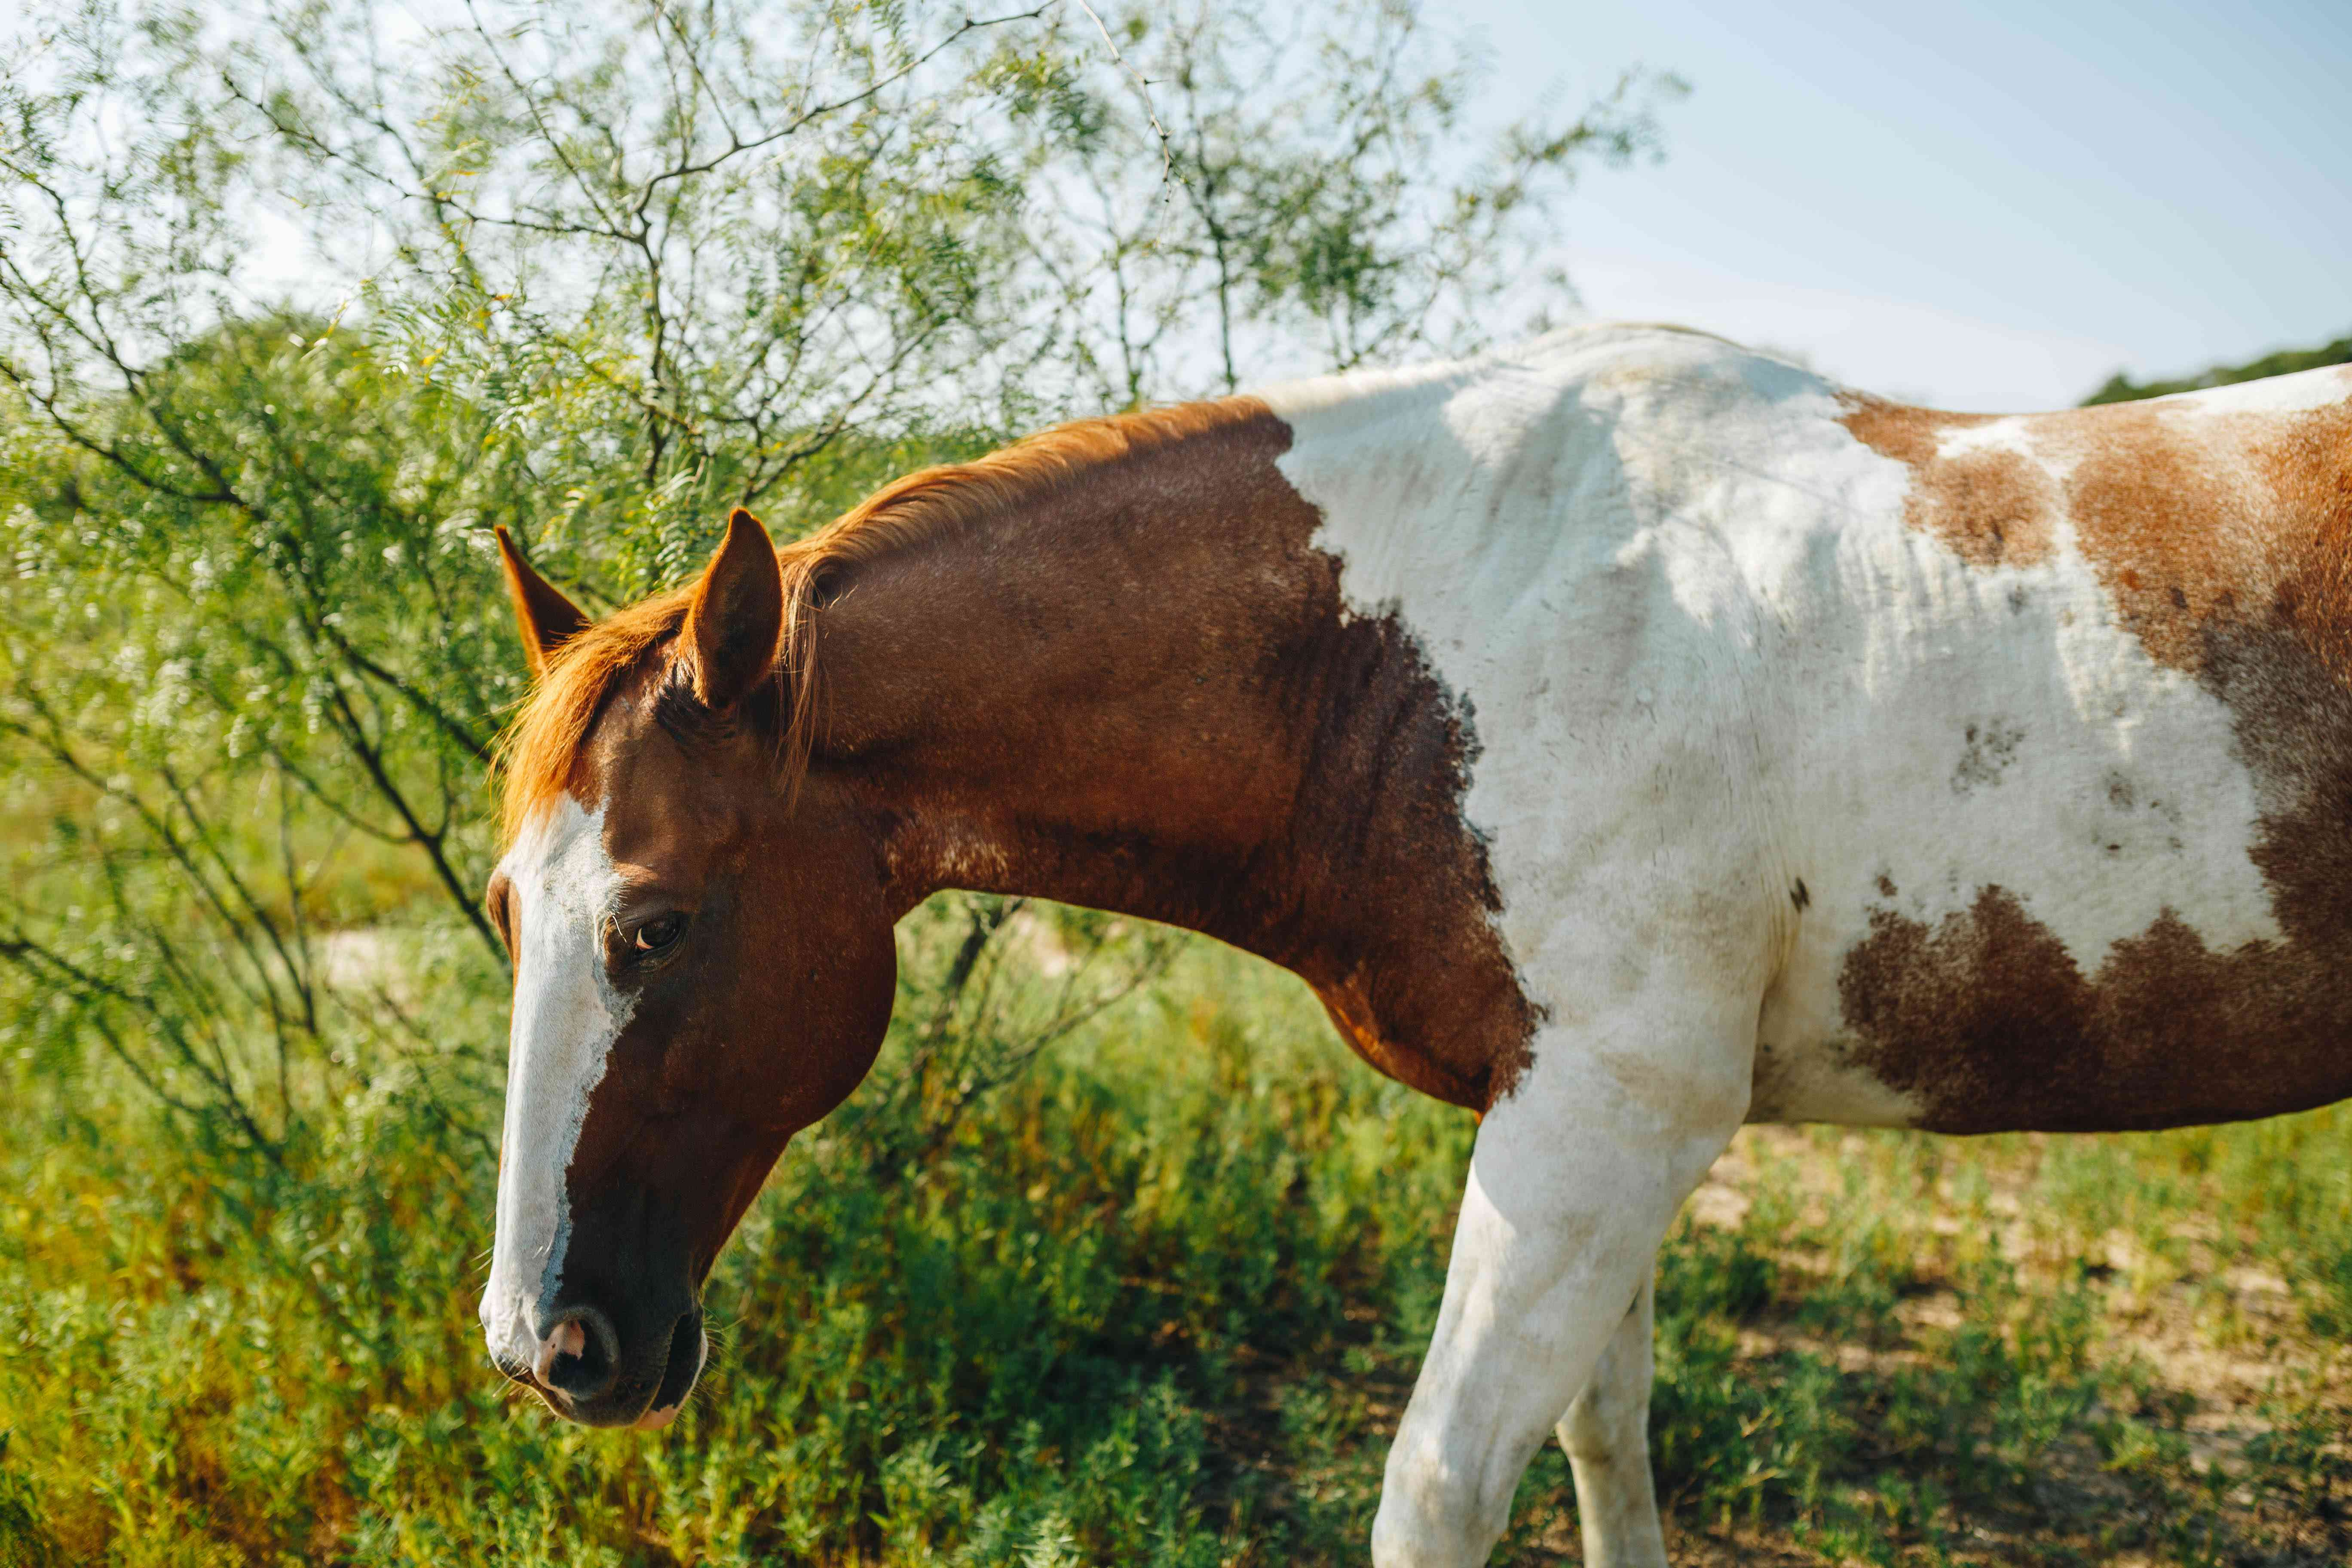 brown and white horse gives side eye